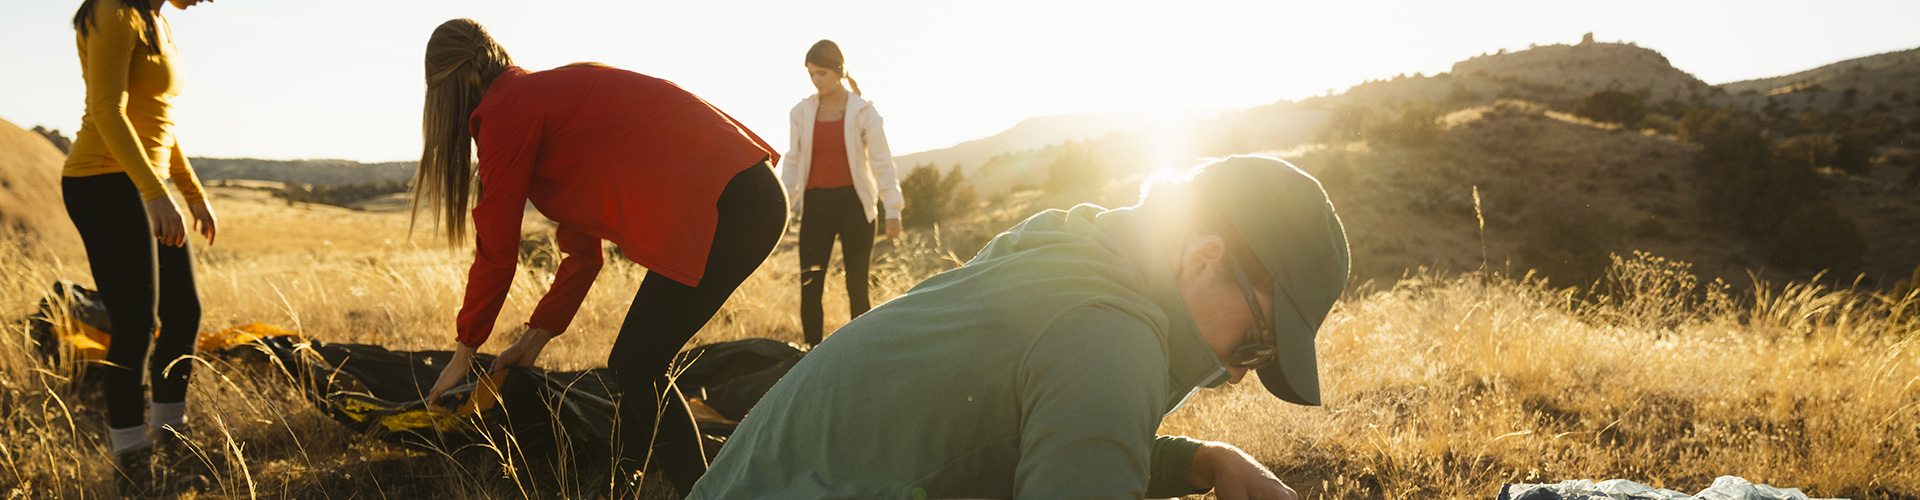 Women setting up their Kelty tent and accessories